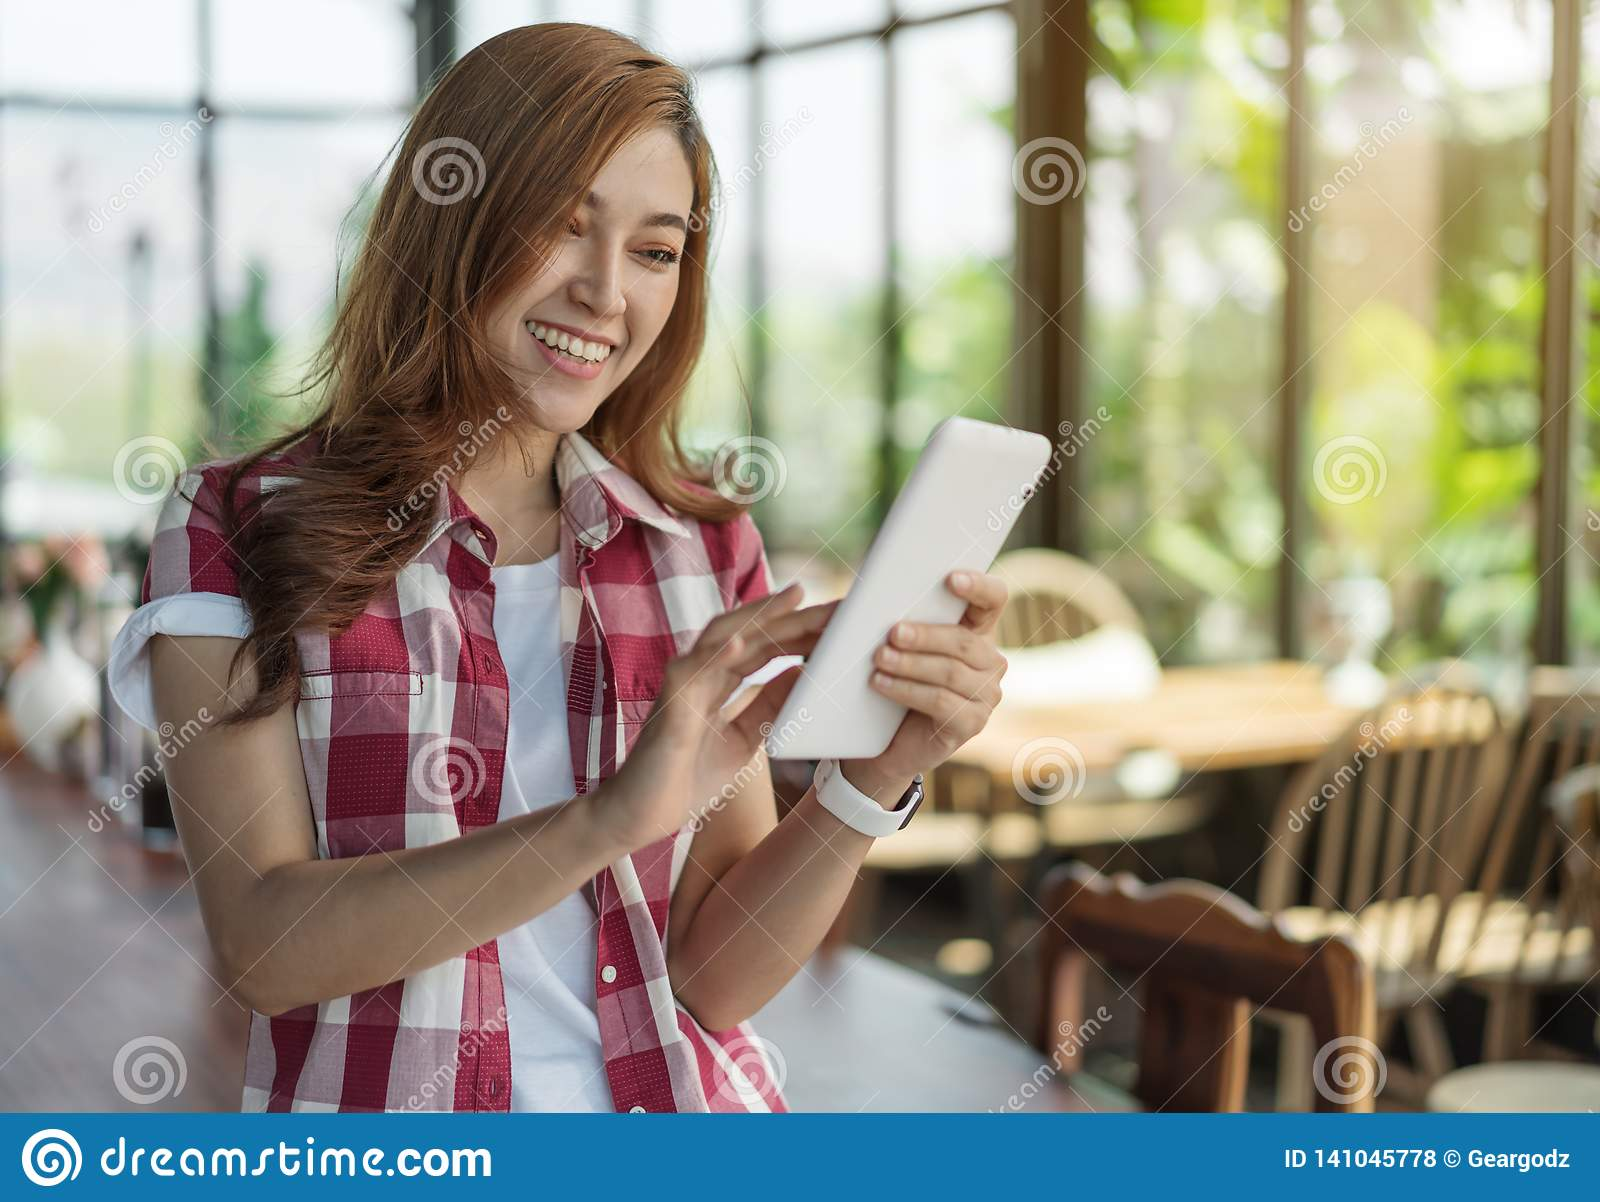 Happy woman using digital tablet in cafe